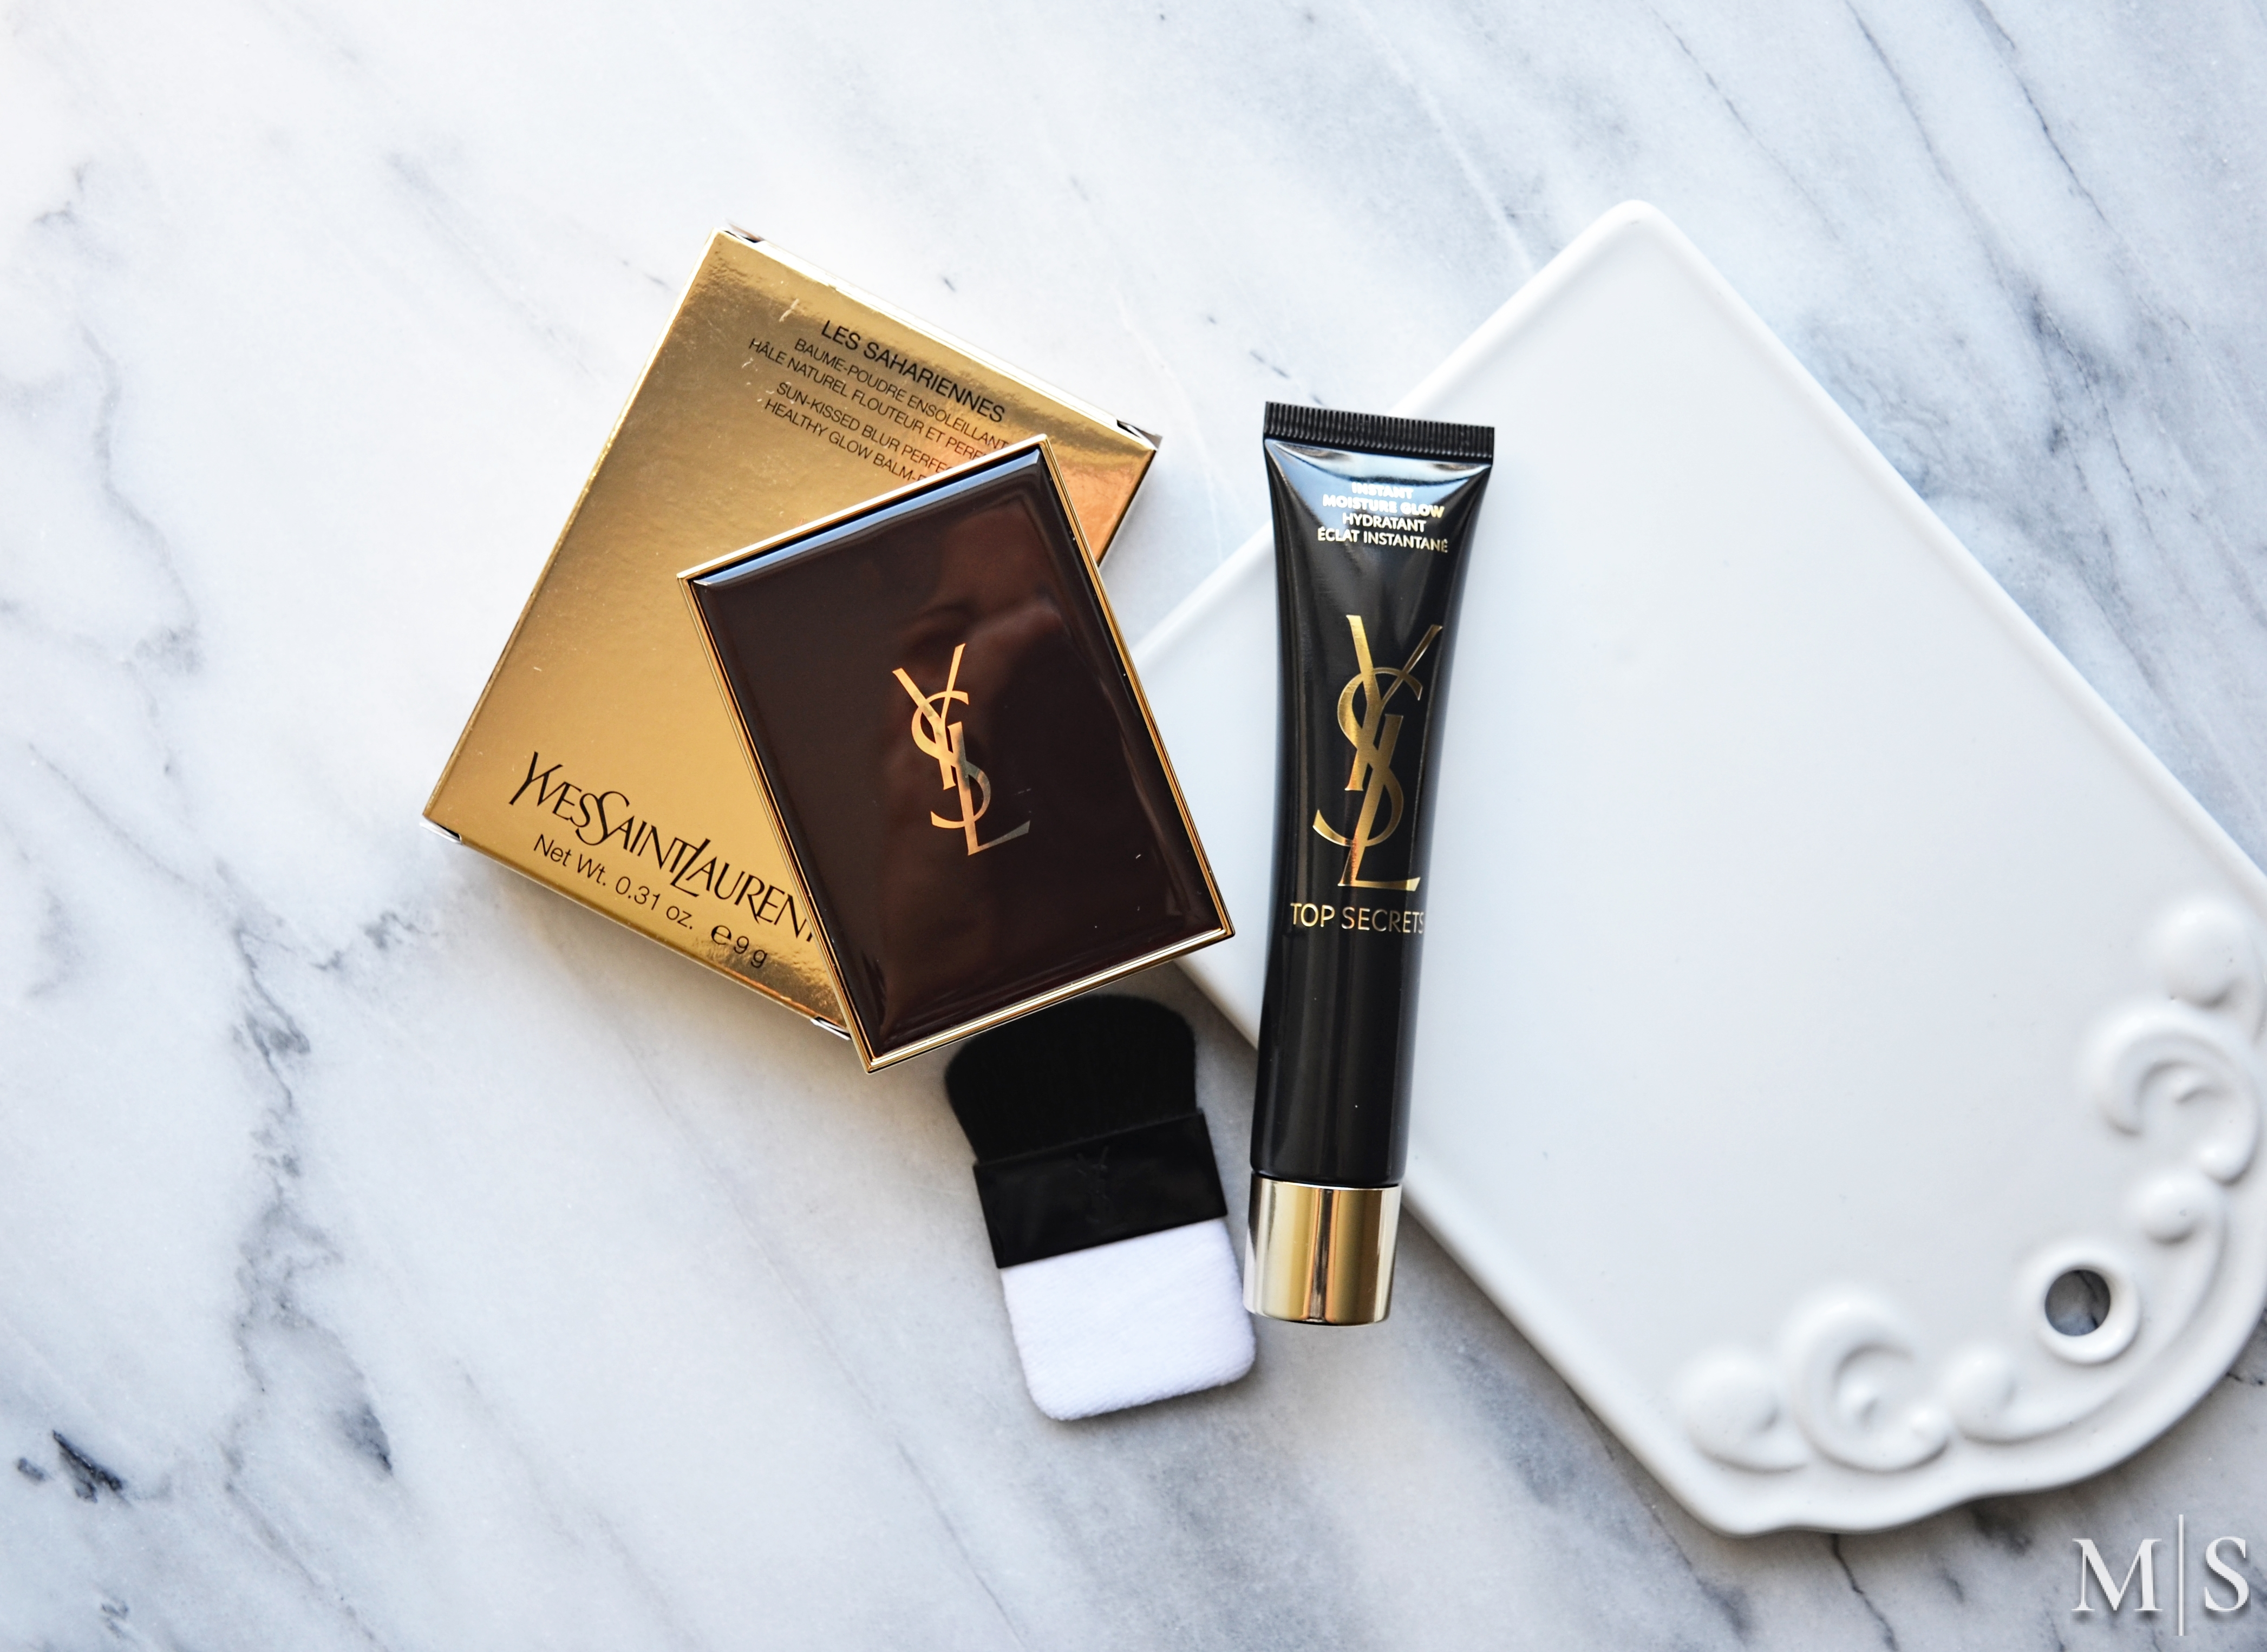 34b2af8e380 The YSL Les Sahariennes Healthy Glow Balm-Powder is a cream or actually  balm to powder bronzer that delivers a natural sun-kissed glow.